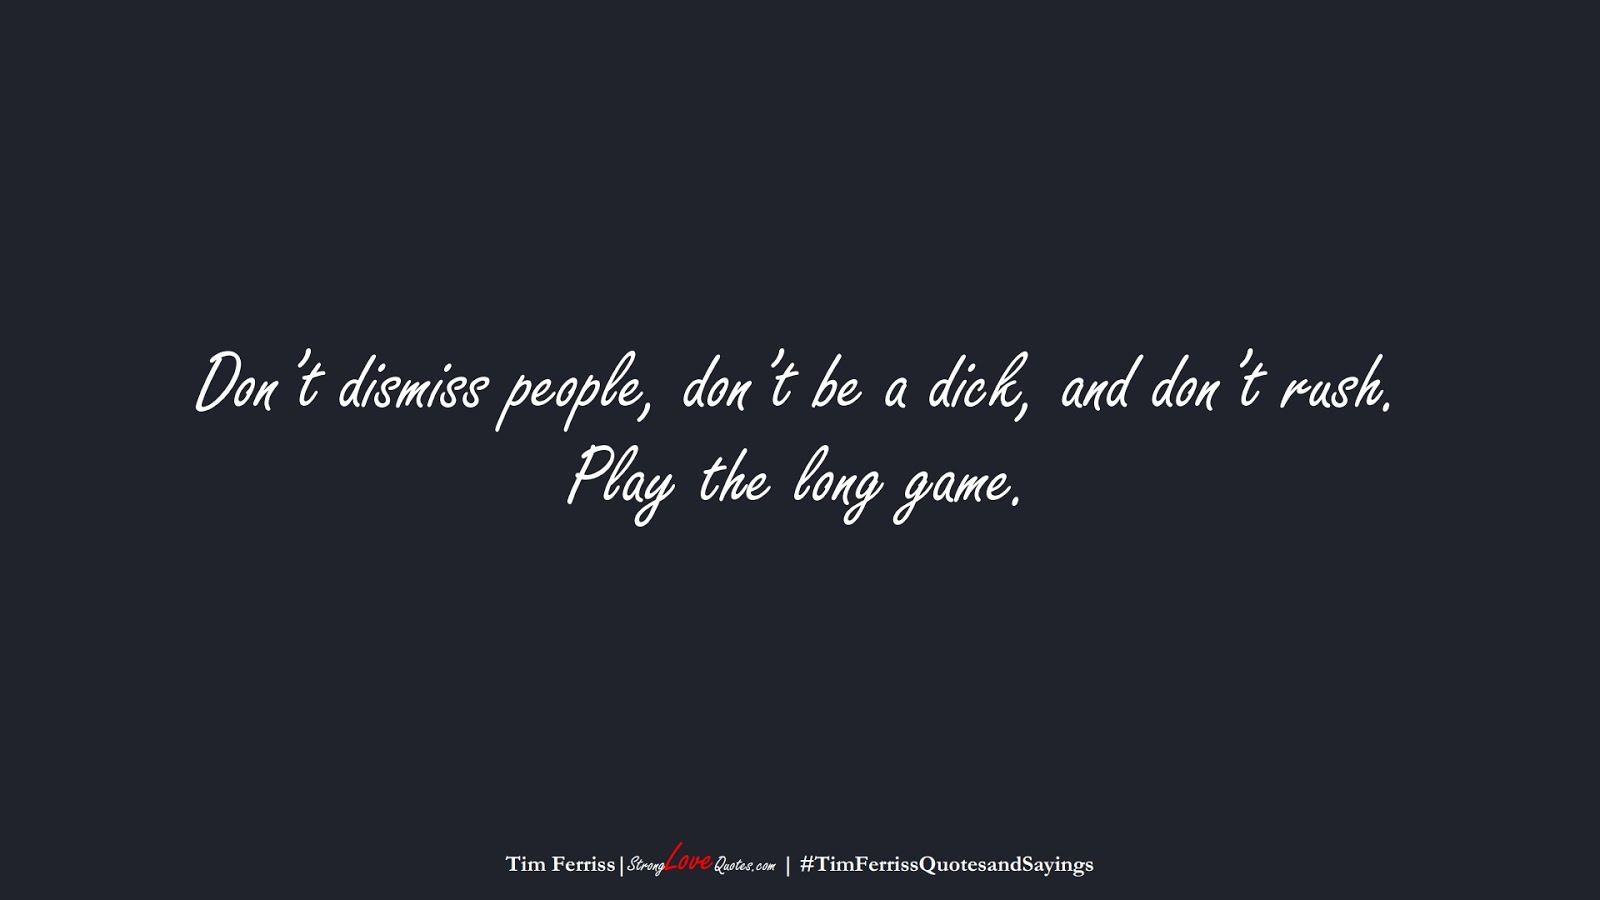 Don't dismiss people, don't be a dick, and don't rush. Play the long game. (Tim Ferriss);  #TimFerrissQuotesandSayings